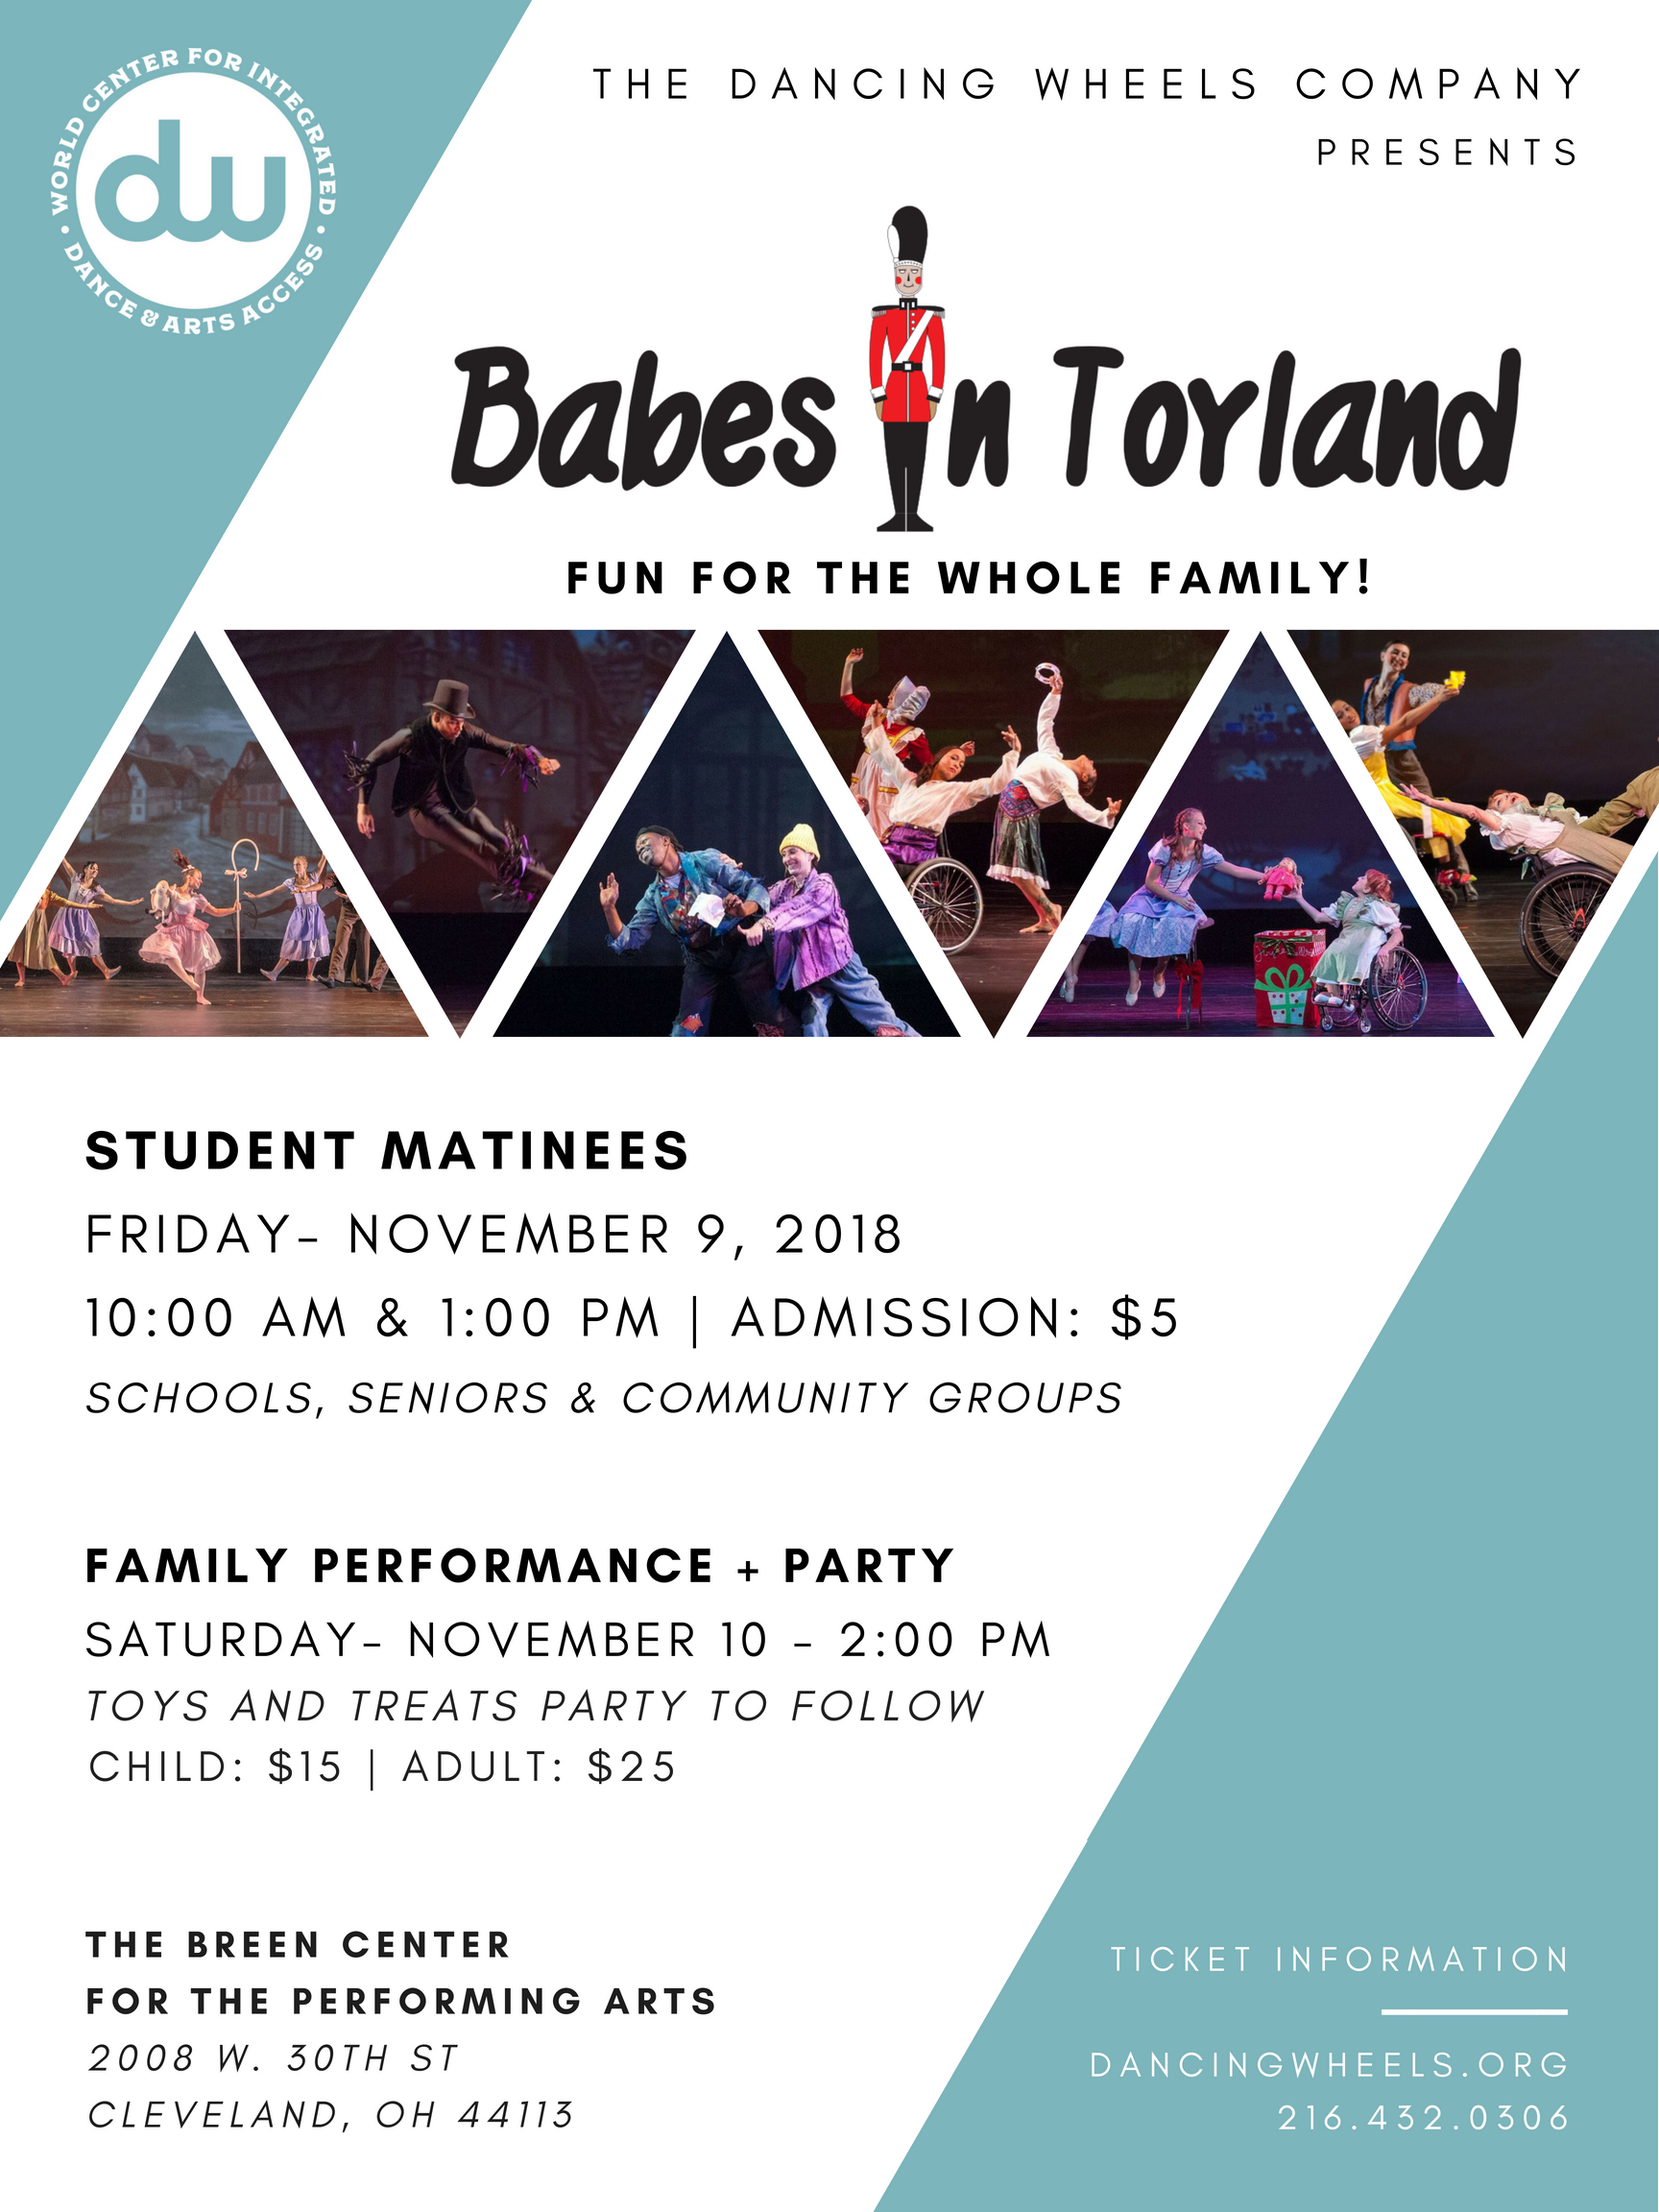 The Dancing Wheels Company School Presents Babes In Toyland 10am Matinee Show